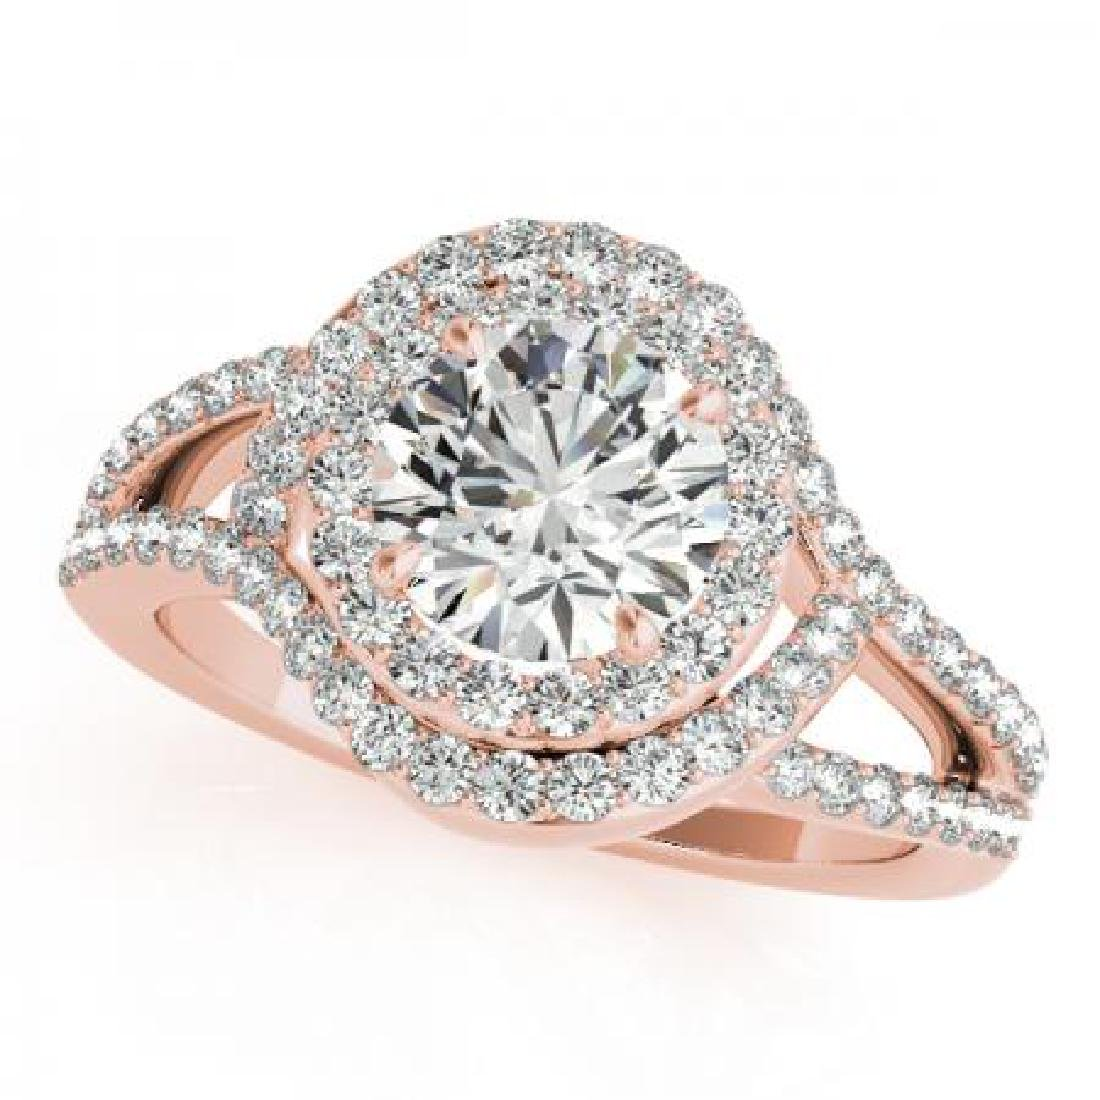 CERTIFIED 14KT ROSE GOLD 1.68 CT G-H/VS-SI1 DIAMOND HAL